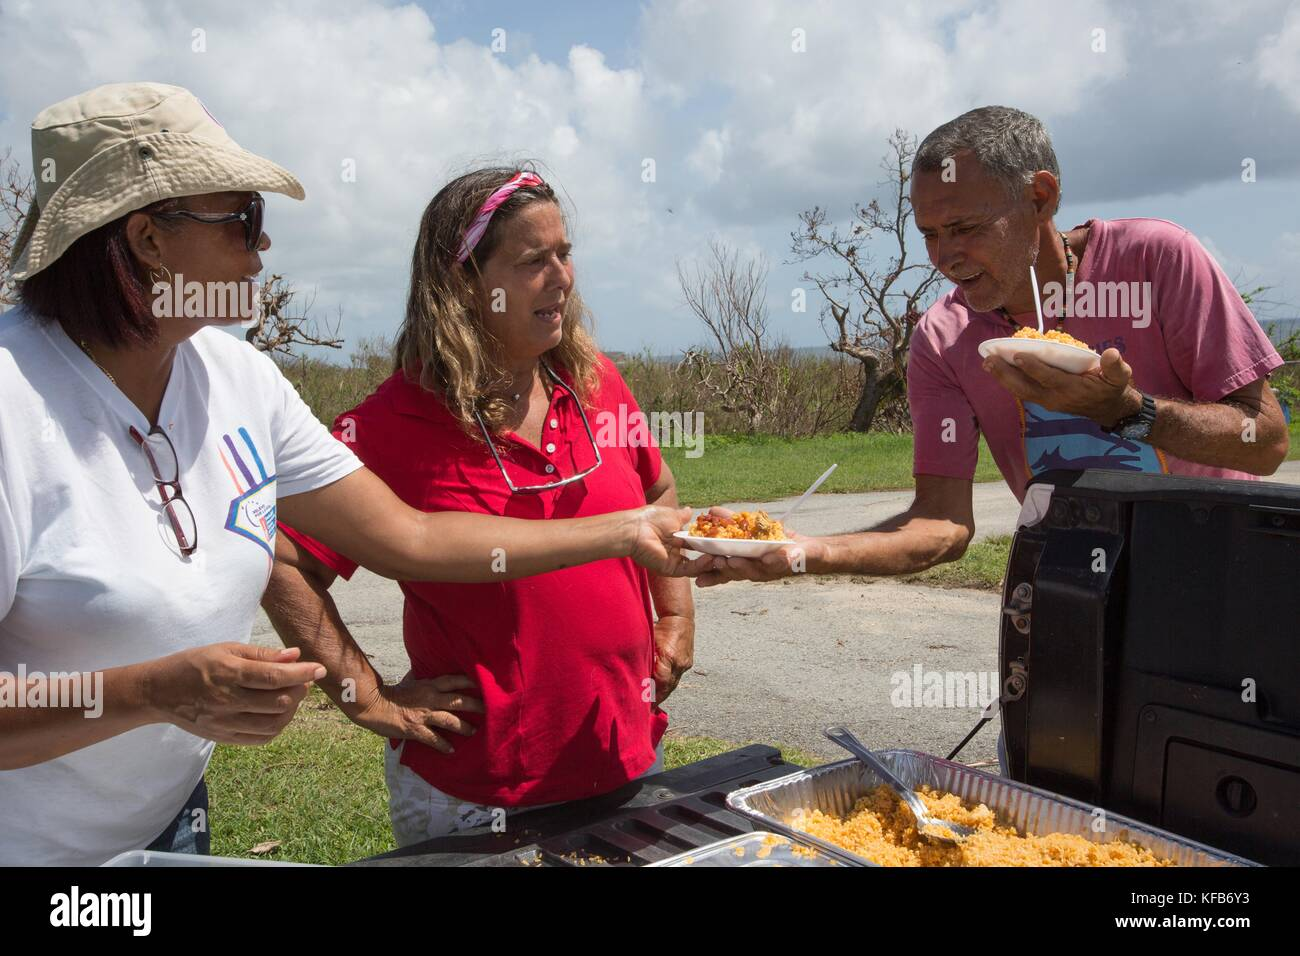 ViequesLove non-profit organization volunteers deliver hot meals to Puerto Rican residents during relief efforts - Stock Image